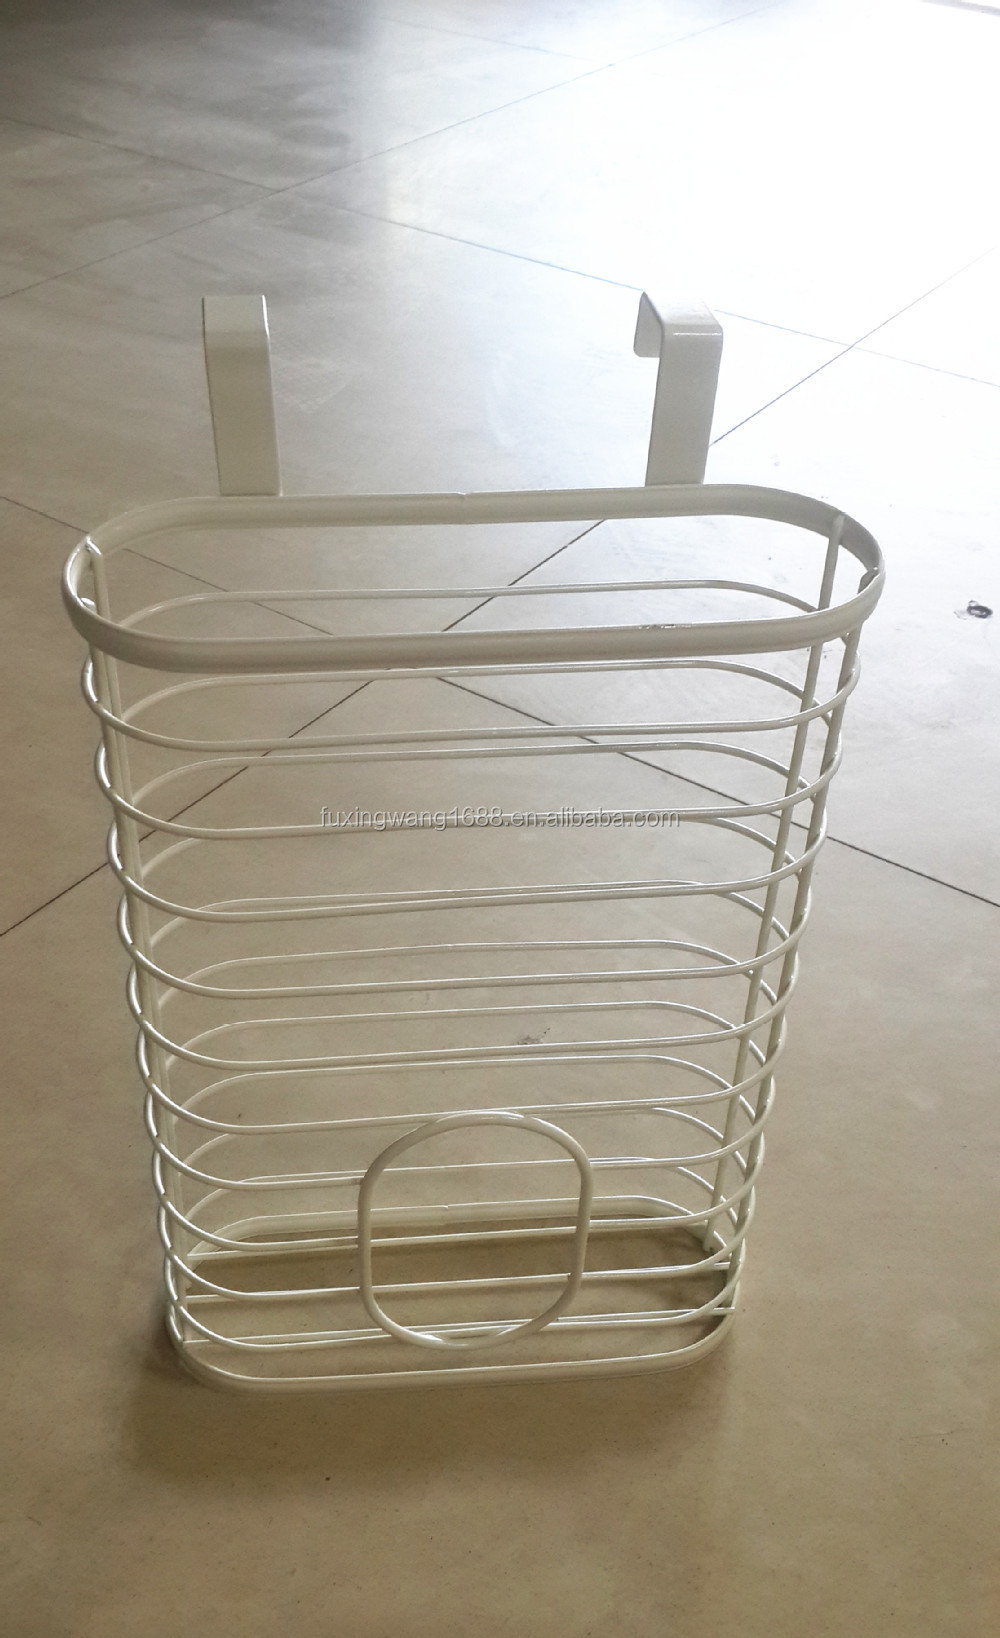 Over The Cabinet Basket Plastic Bag Holder Over The Cabinet Door Basket Bin Recycle Reuse